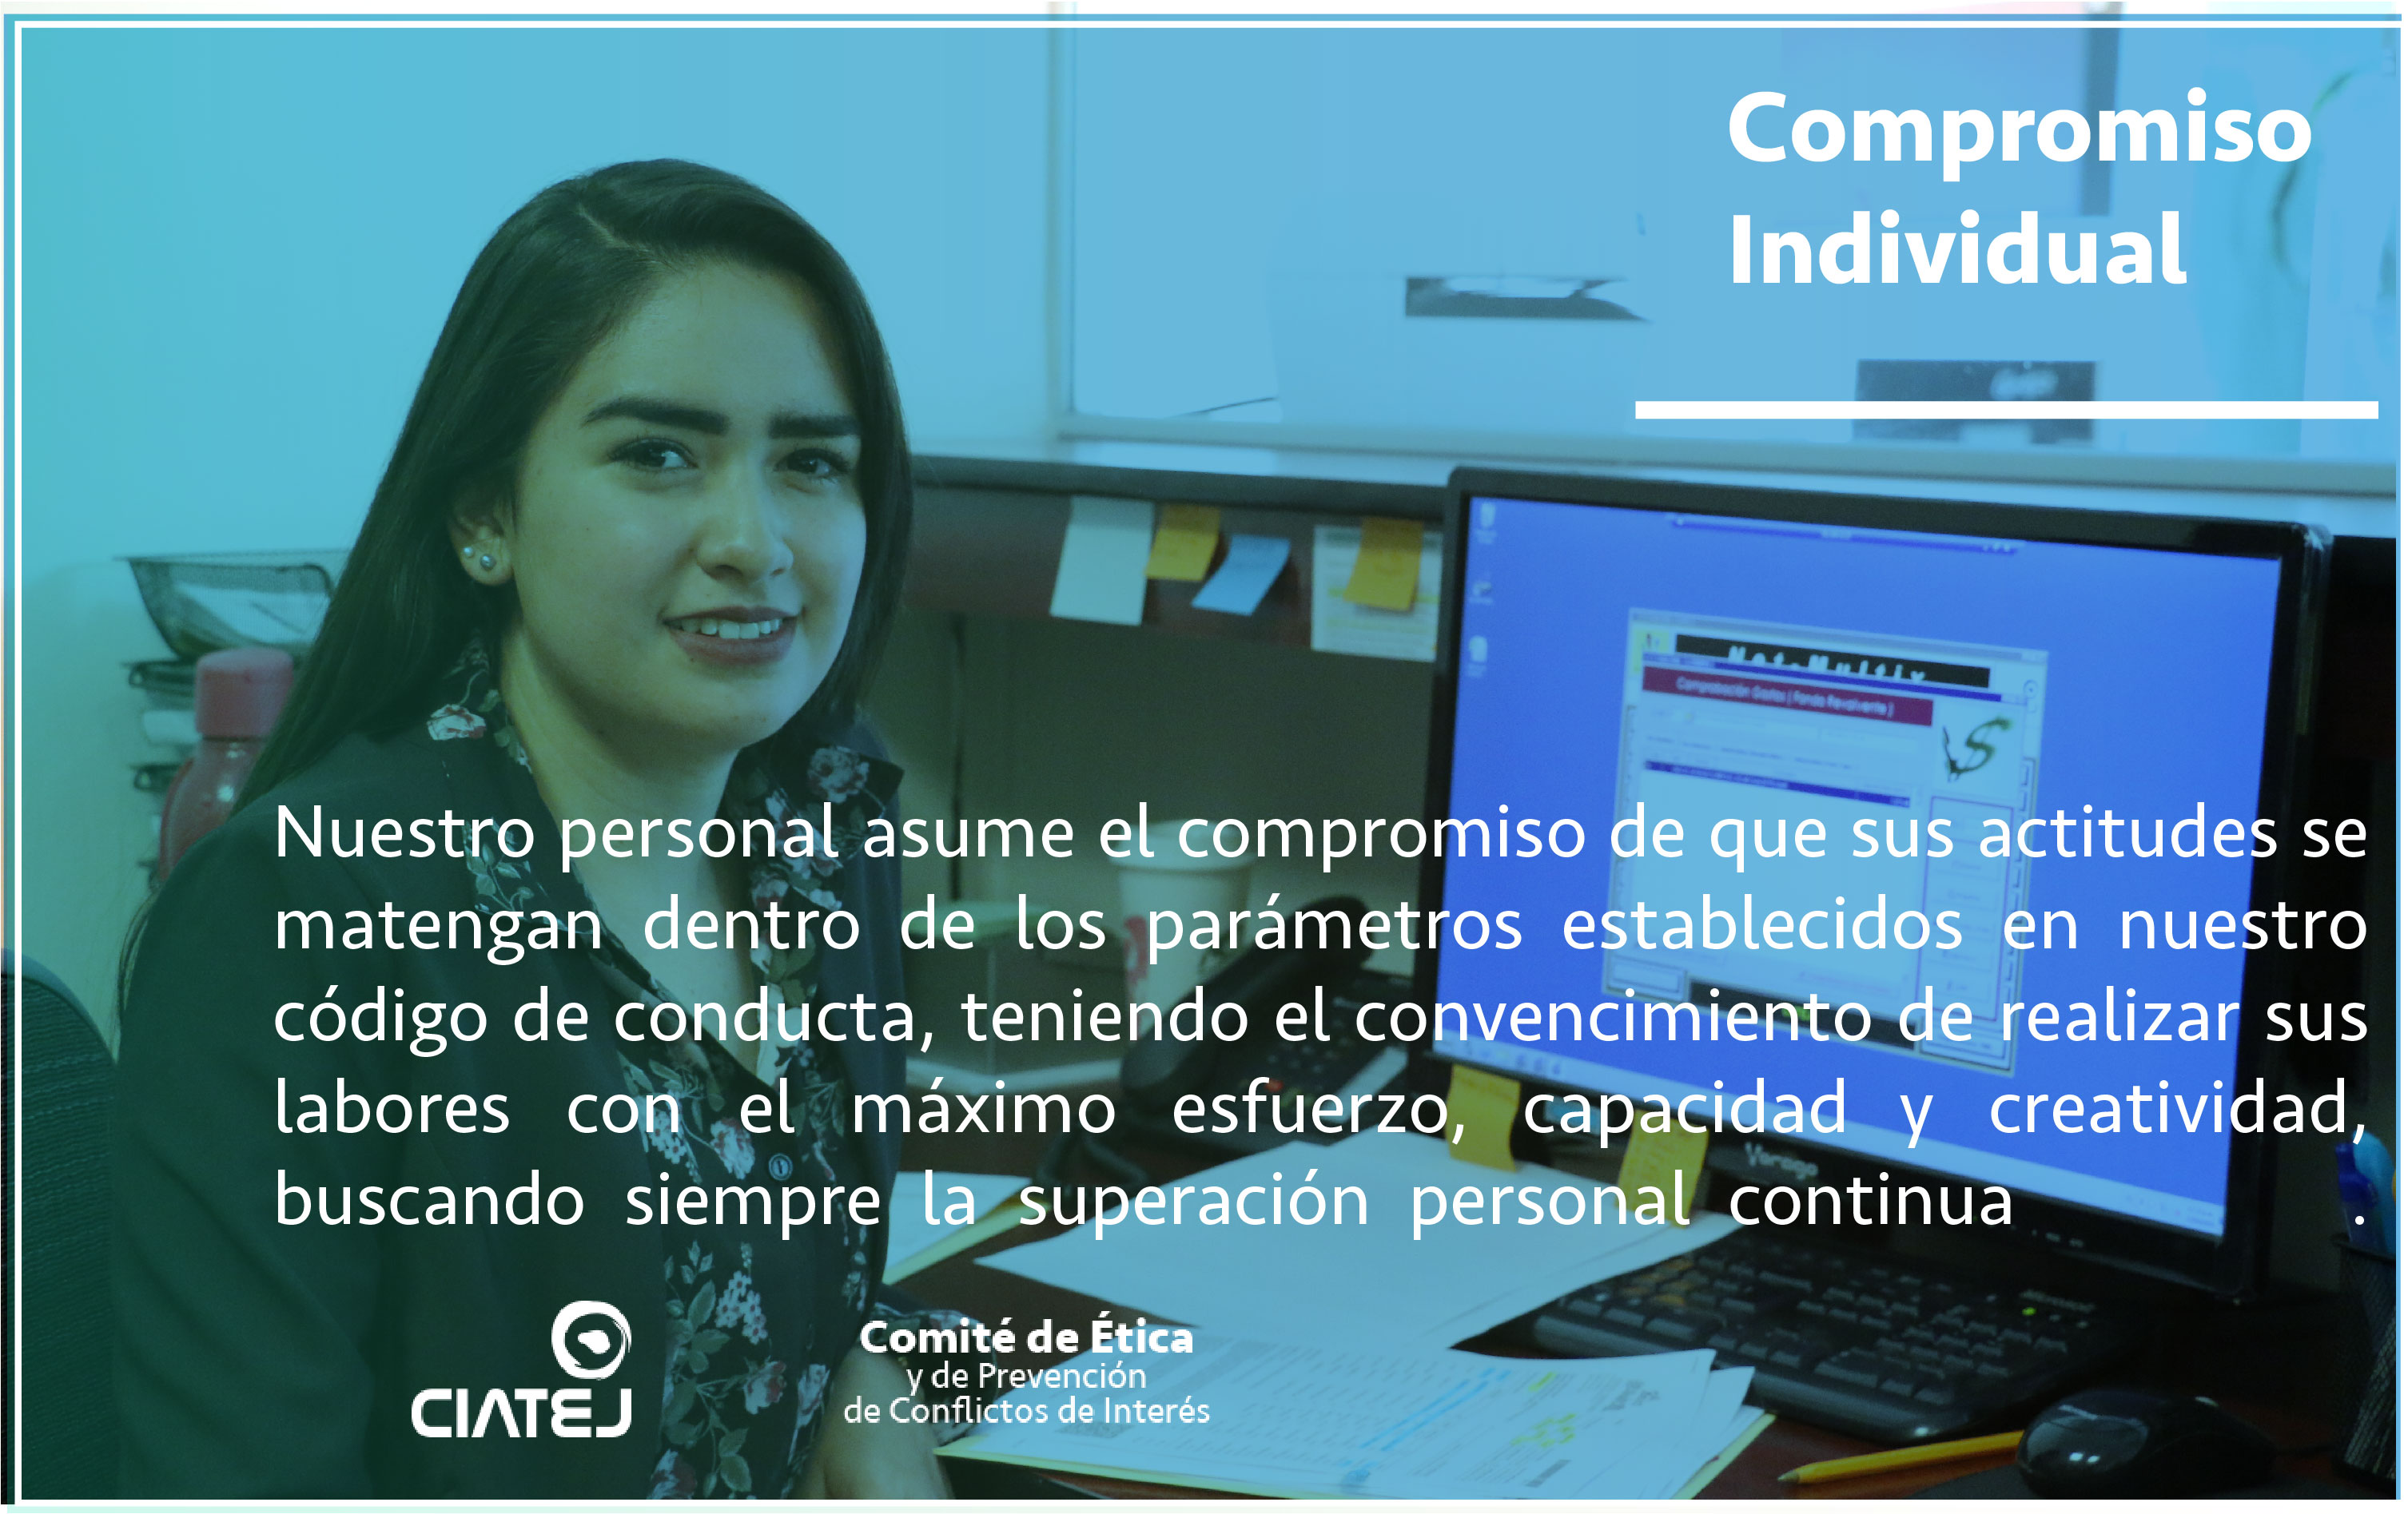 Compromiso individual